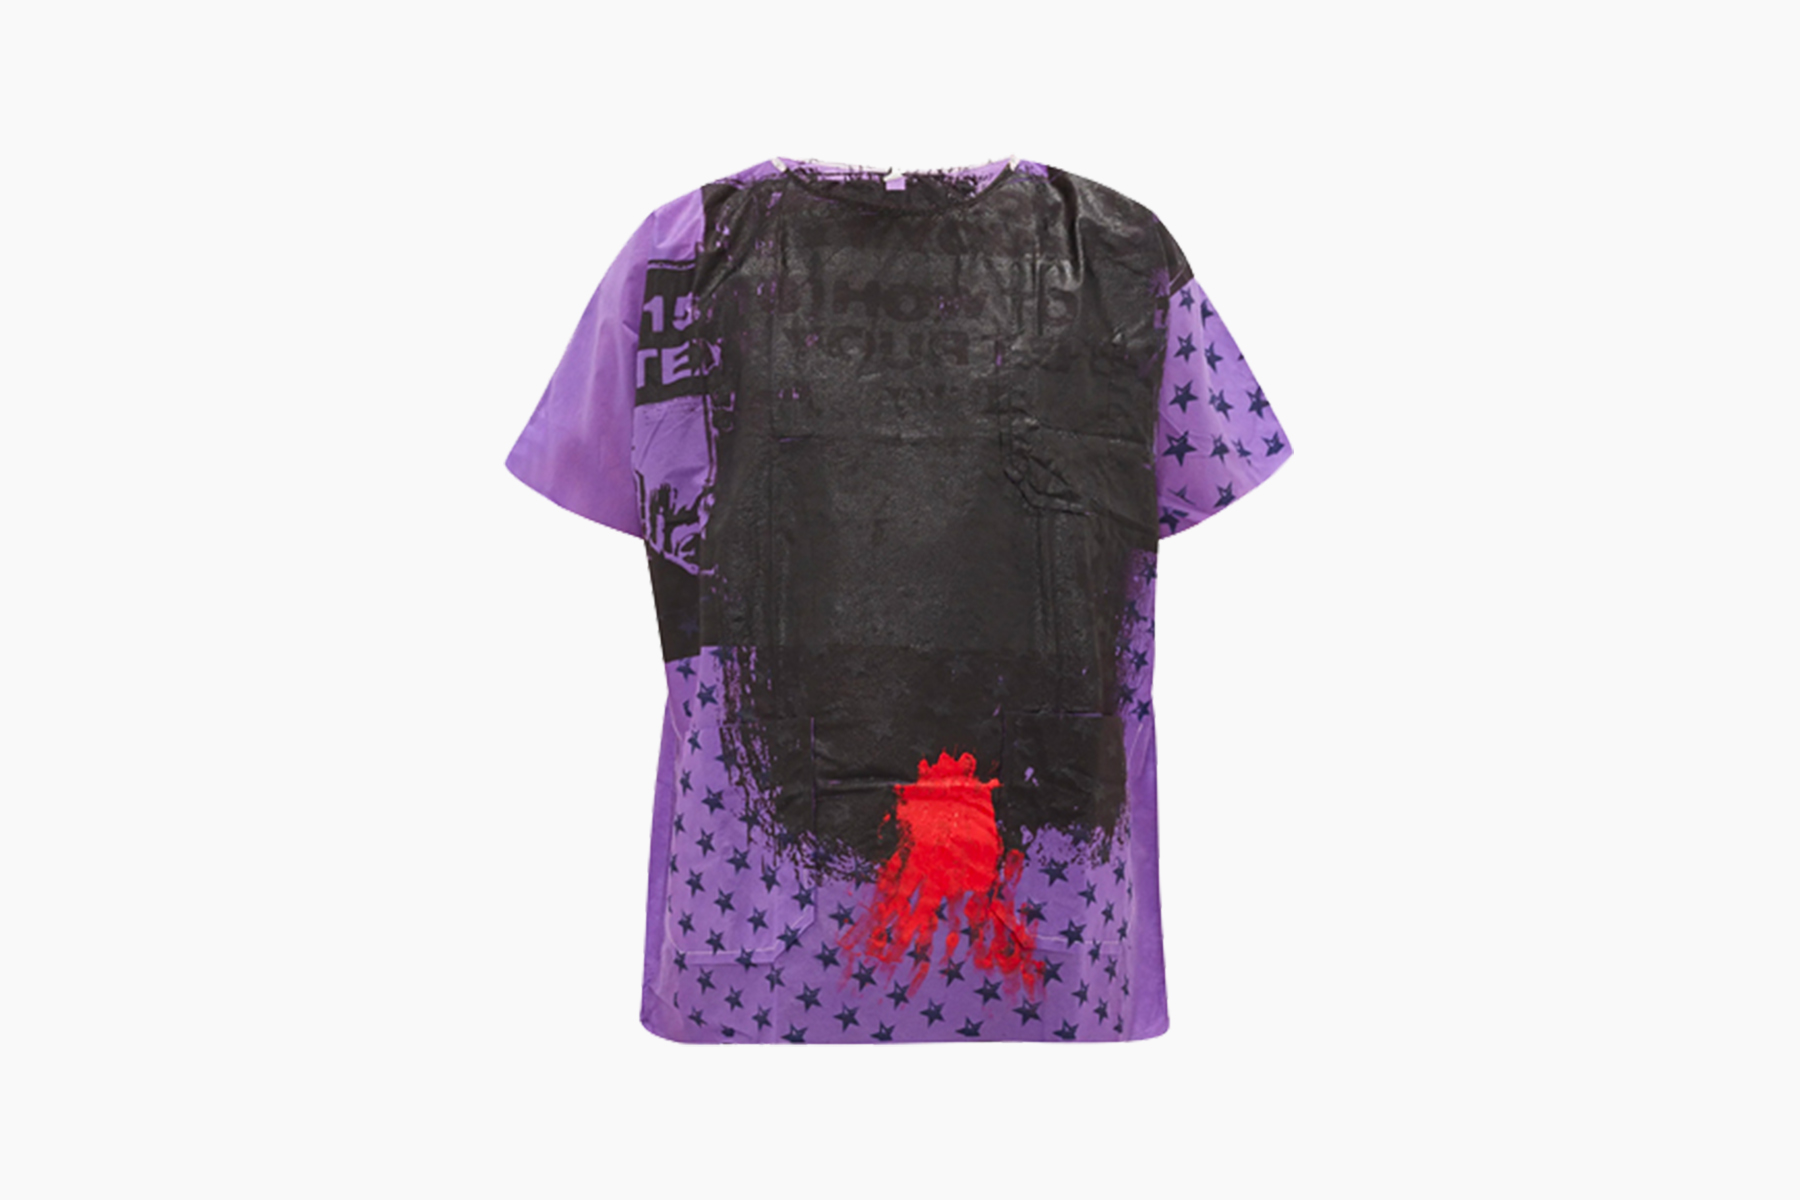 Raf Simons Hand Painted Hospital Gown T-Shirt